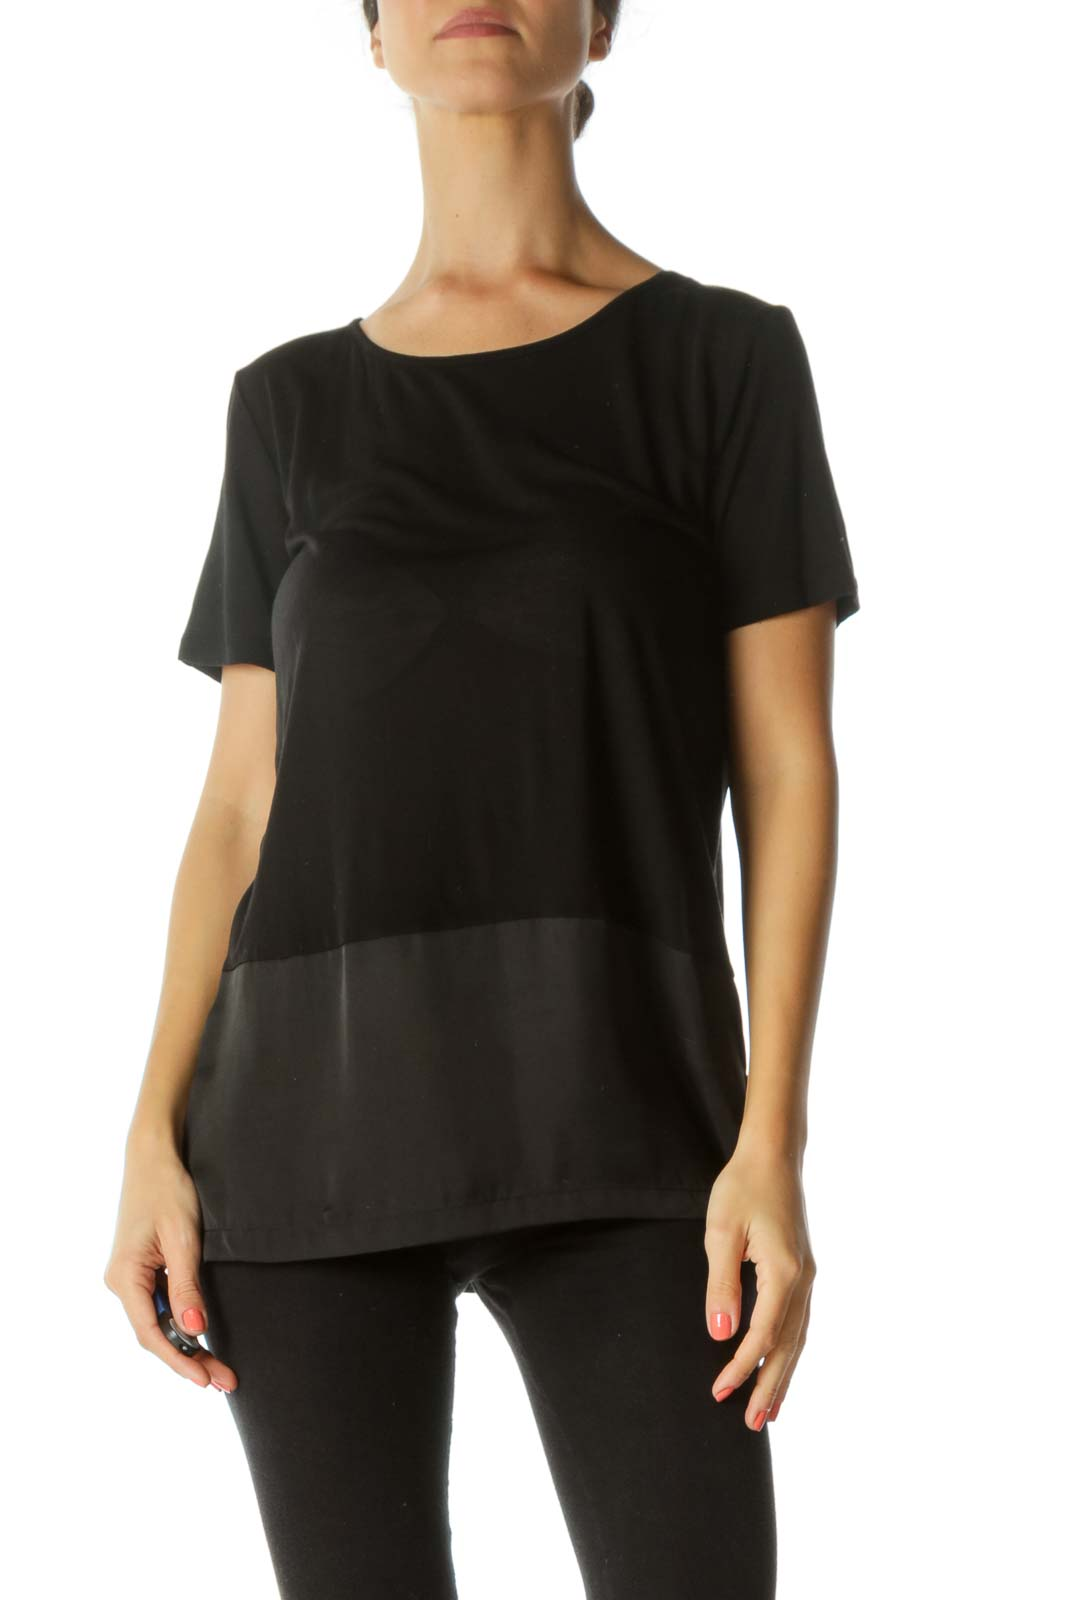 Black Round Neck Mixed-Media Stretch Short-Sleeve Top Front